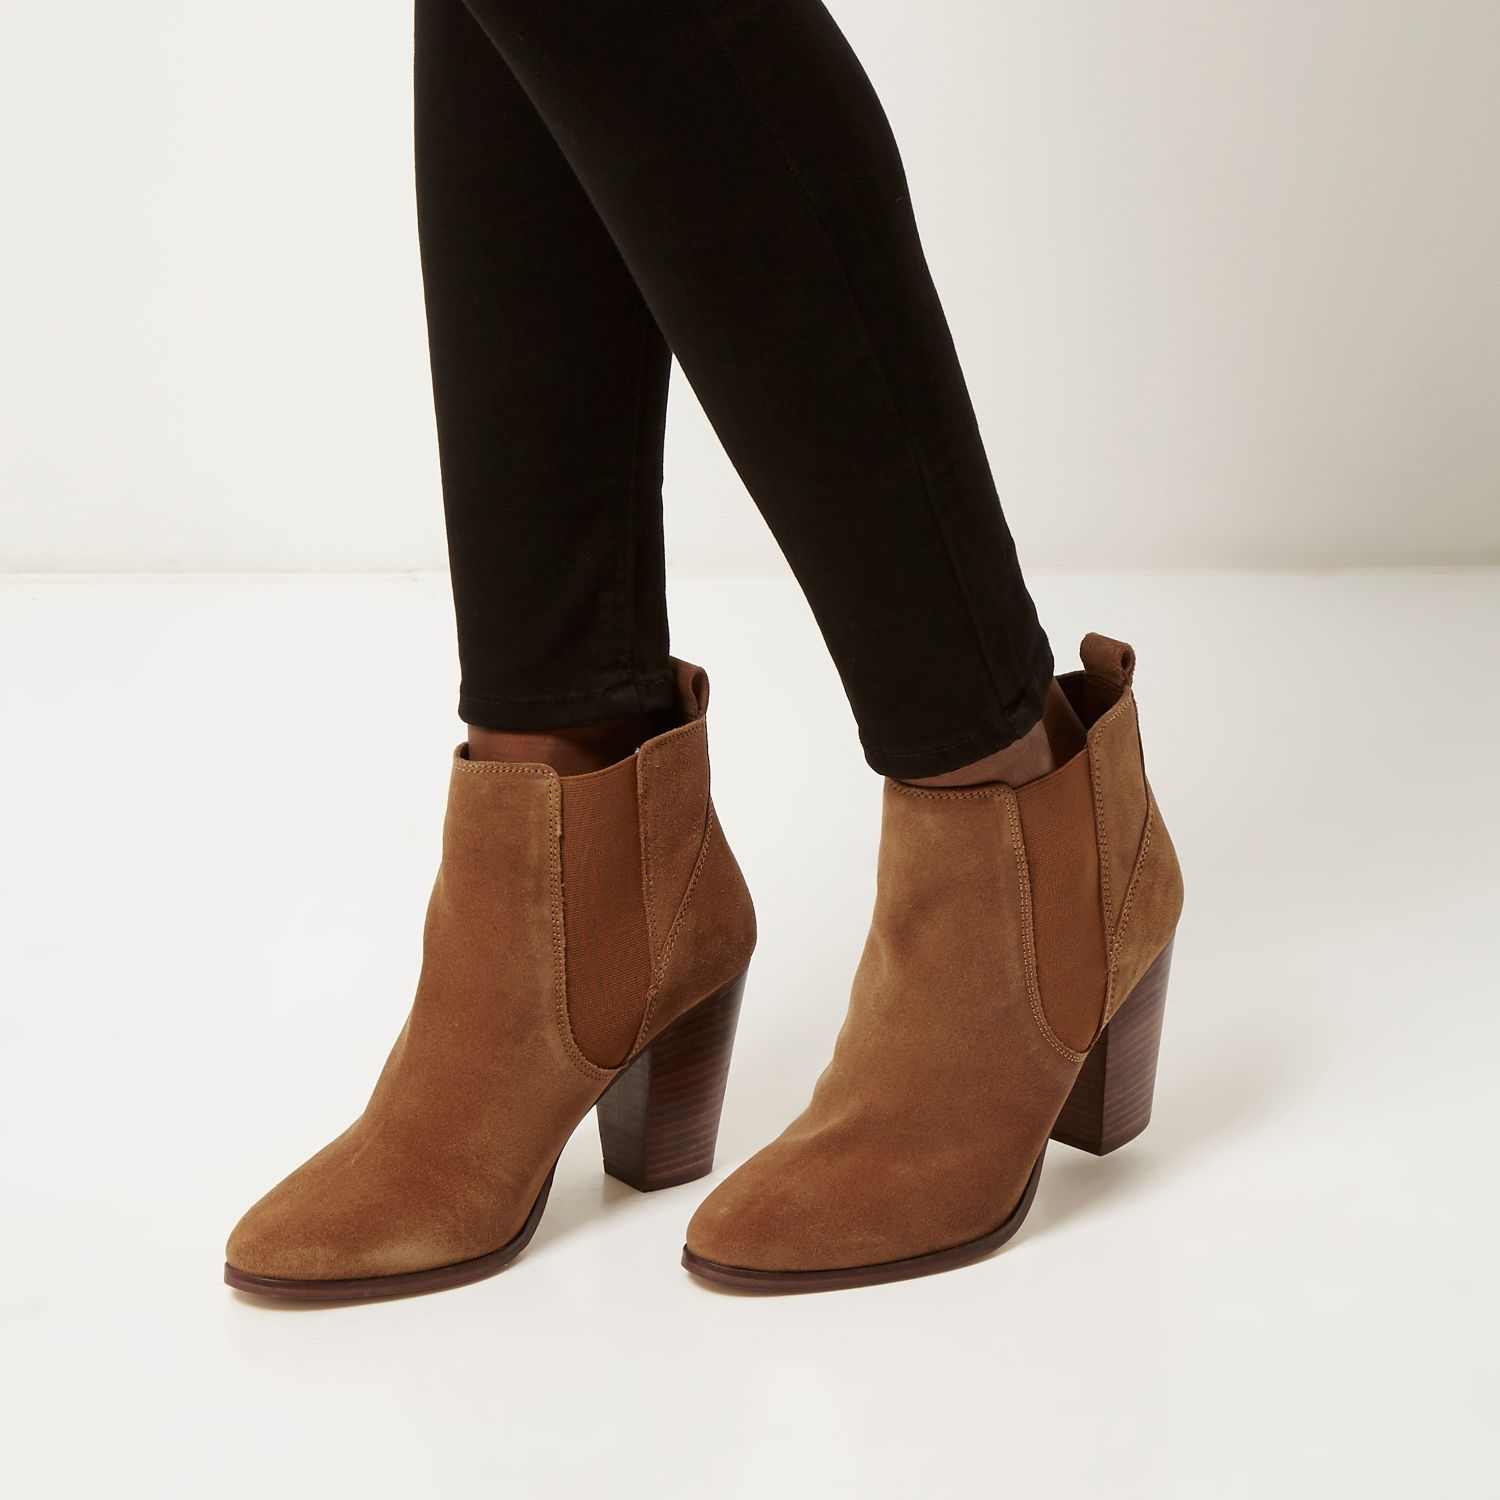 Suede Ankle Boots. Both men and women can enjoy the hip, fun style of suede ankle boots. Out of all the men's shoes in the world, this style of footwear add some variation to the average wardrobe. For men who already have tons of hard leather boots, a pair of soft suede boots can be a welcome change.